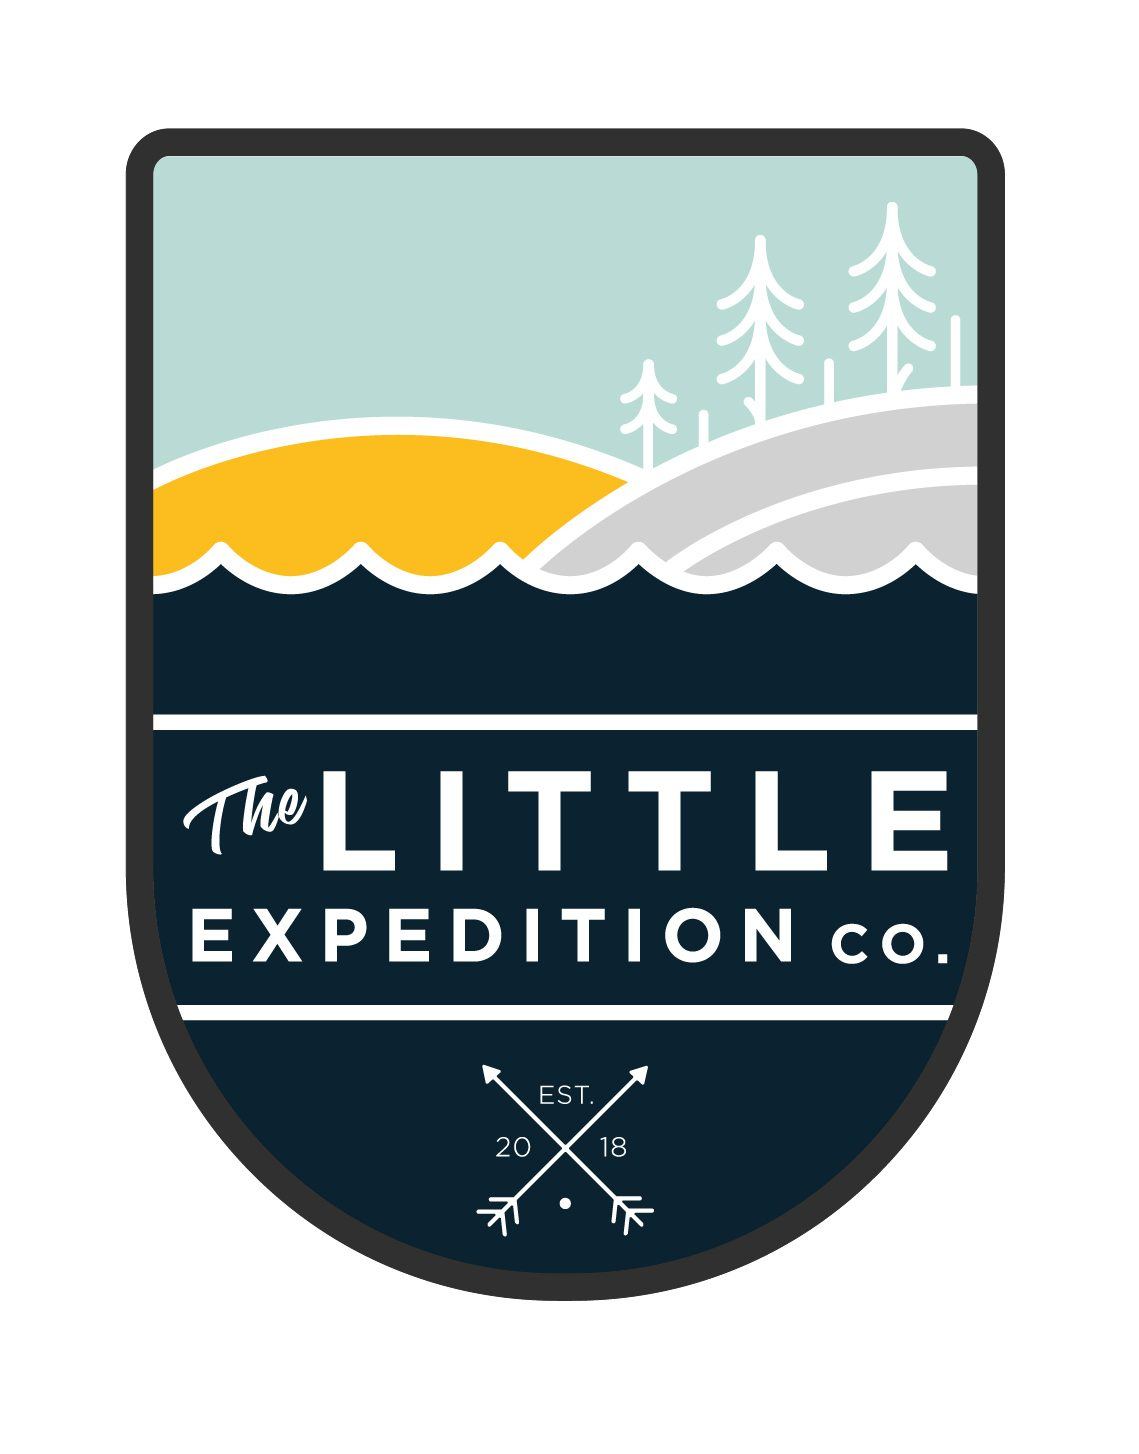 The Little Expedition Company